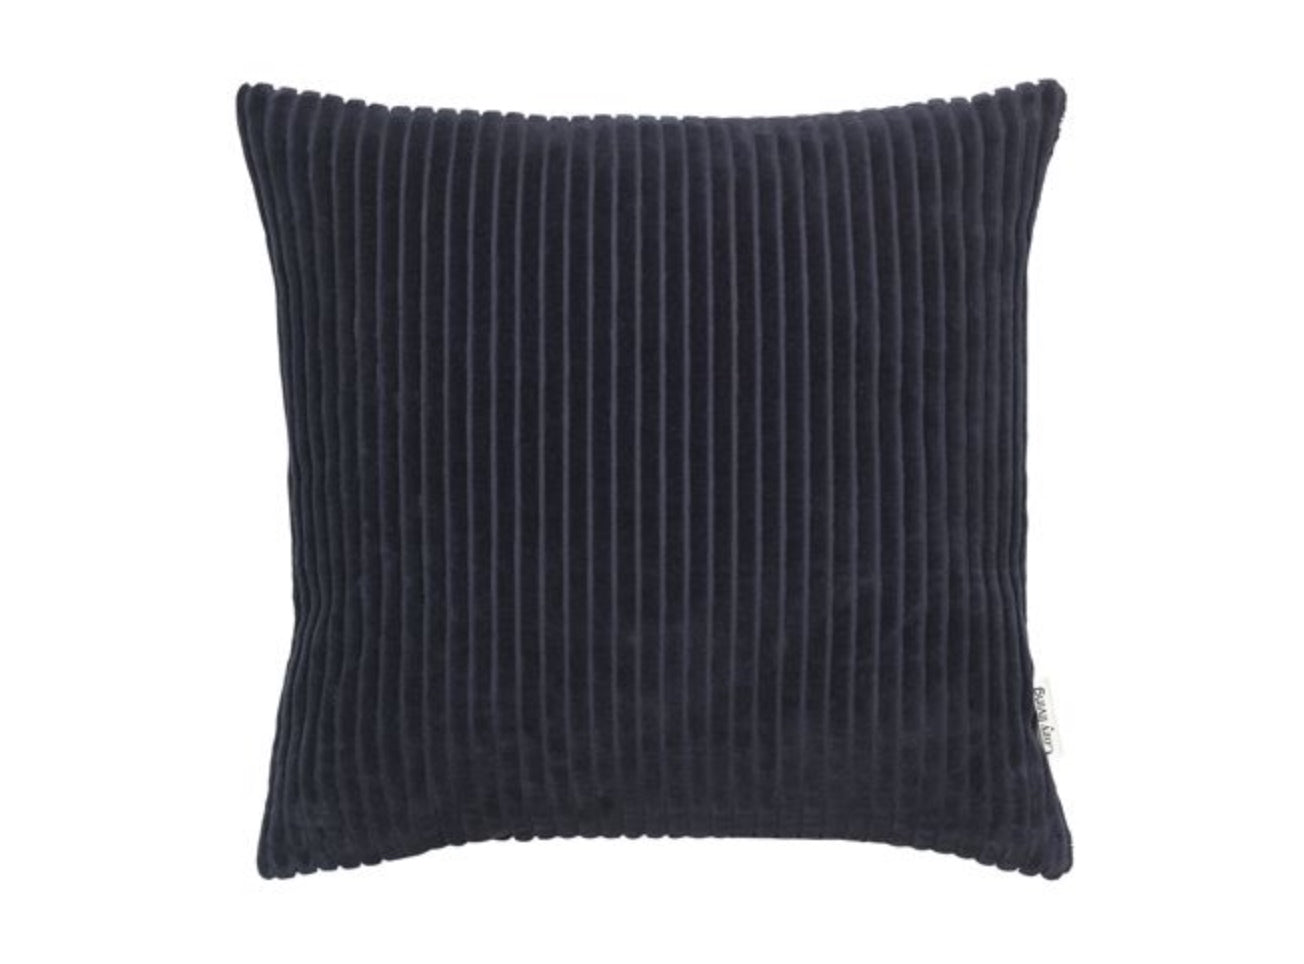 Subscription_OMNI_Cozy_Living_50x50_Ribbed_Blue_Pillow_Lounge_comfort_office_absorb_sound_cozy_classic_Danish_design